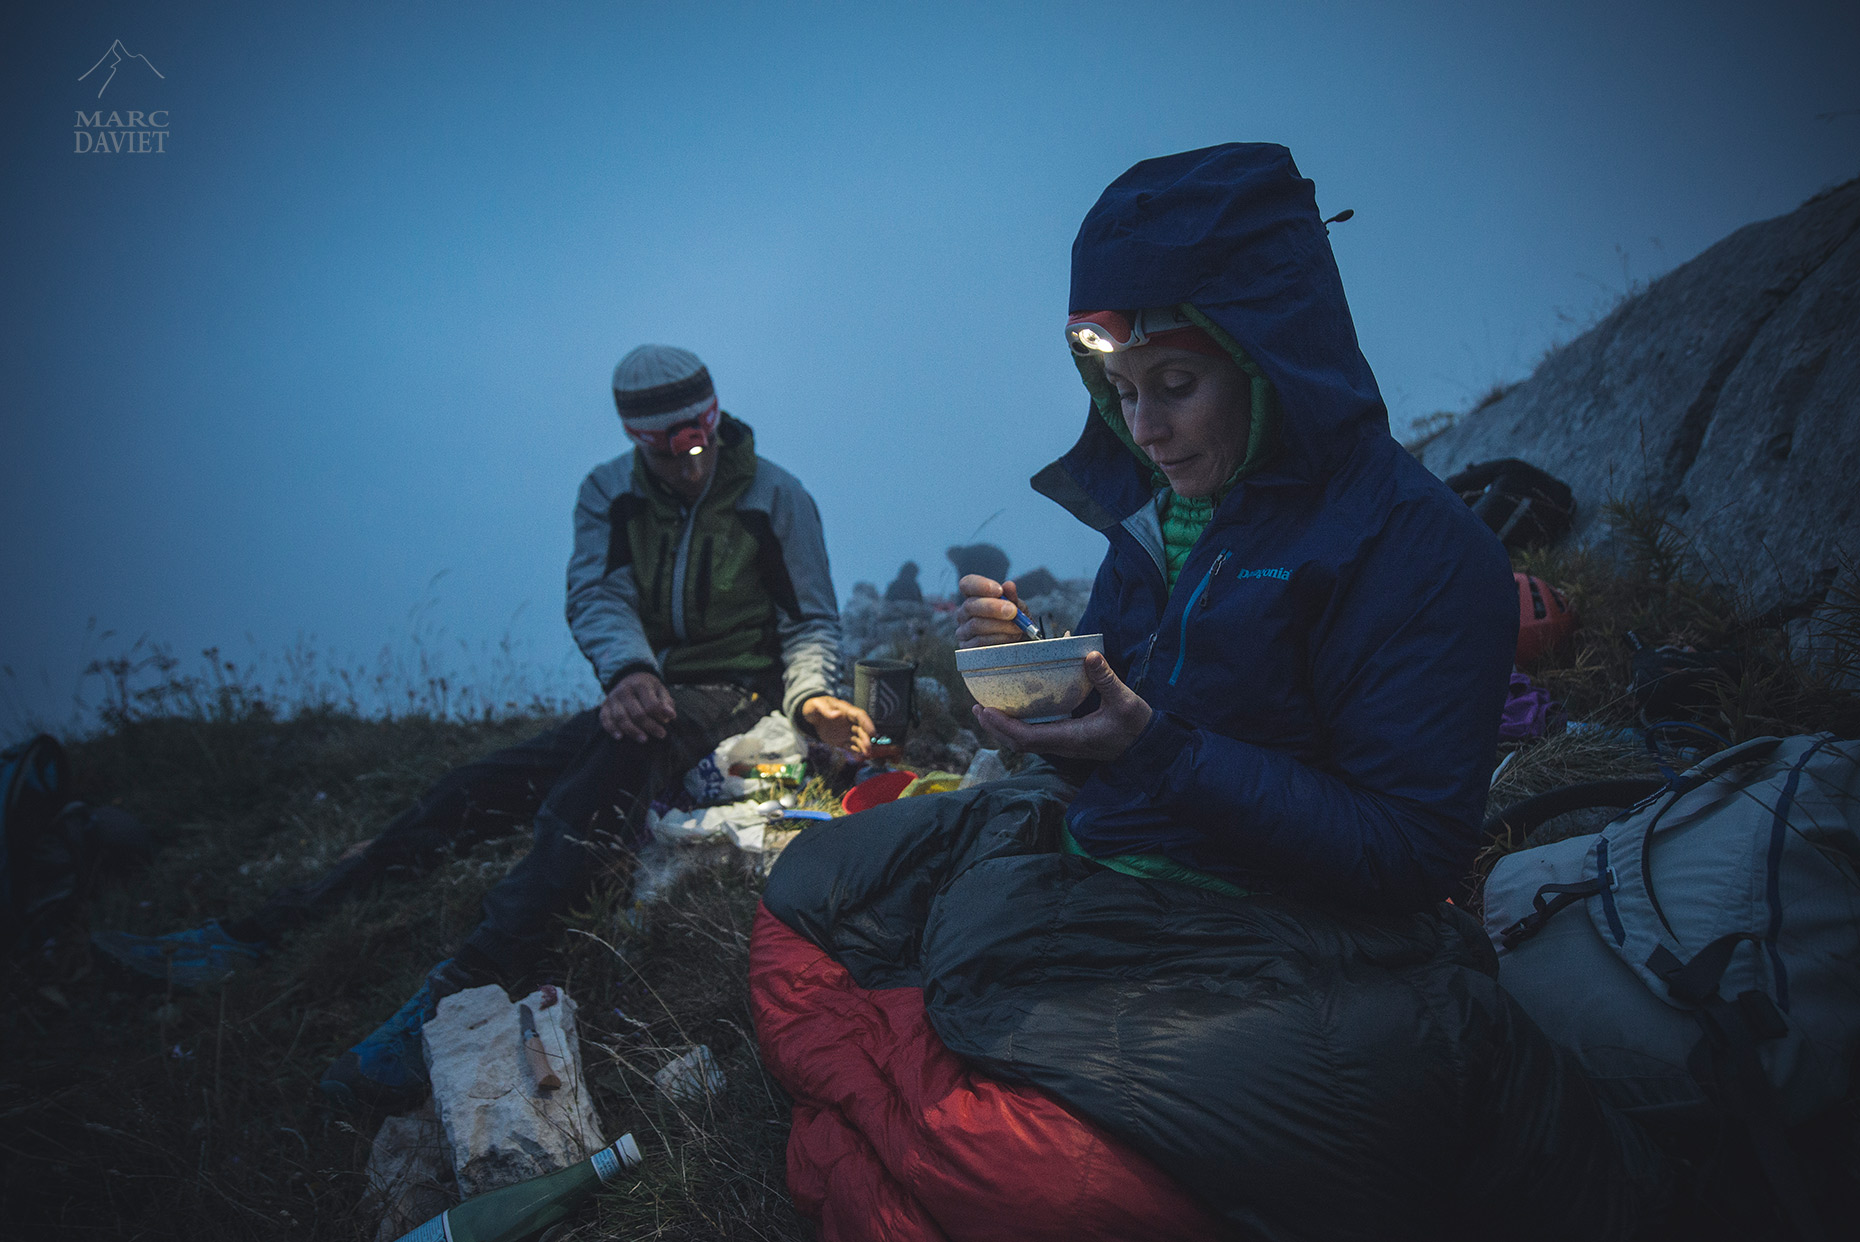 Dinner at bivy - Marc Daviet Photography